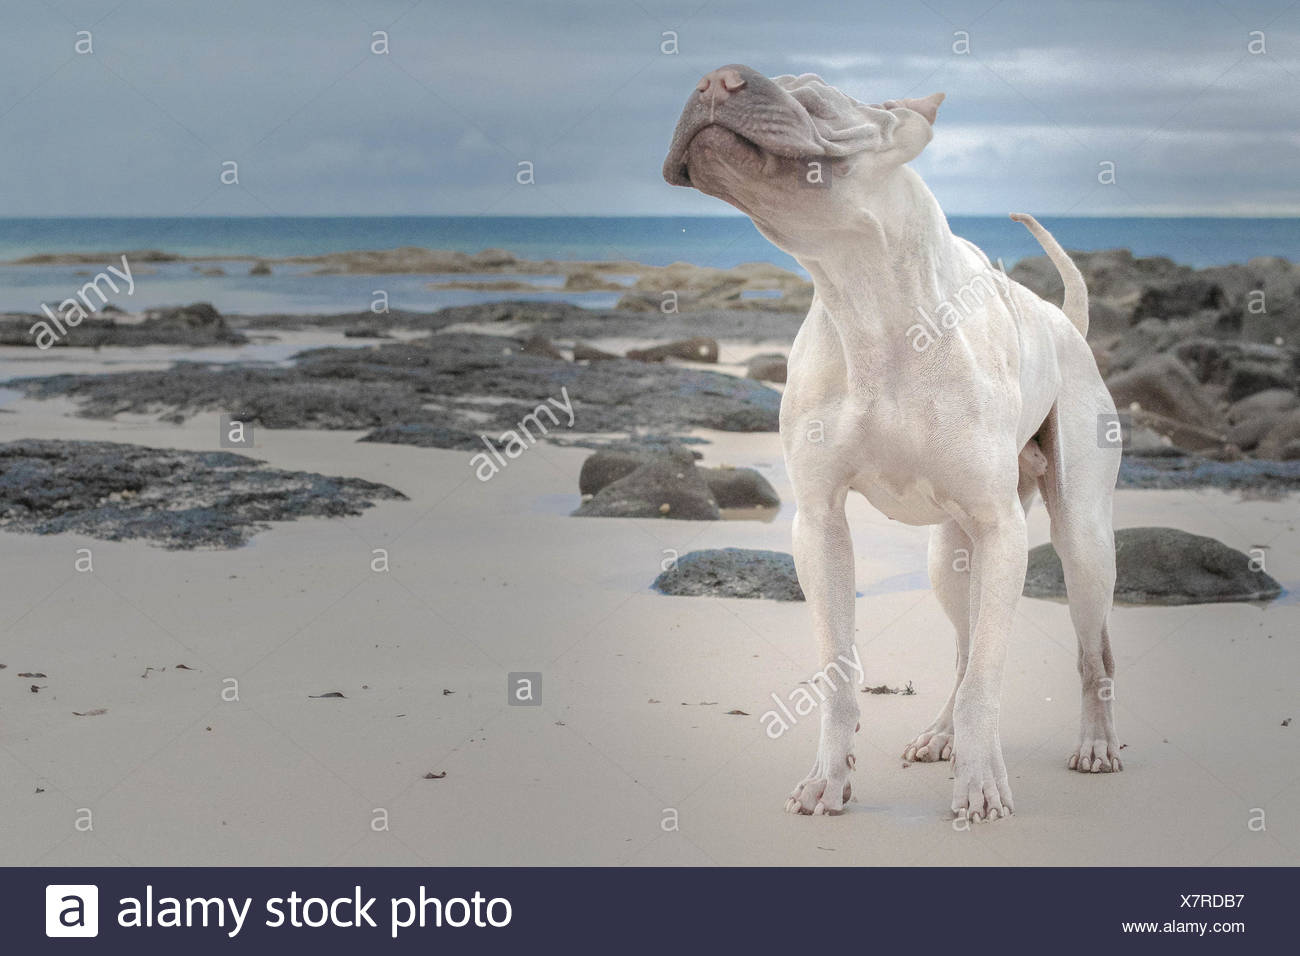 Hairless Shair-pei standing on beach - Stock Image